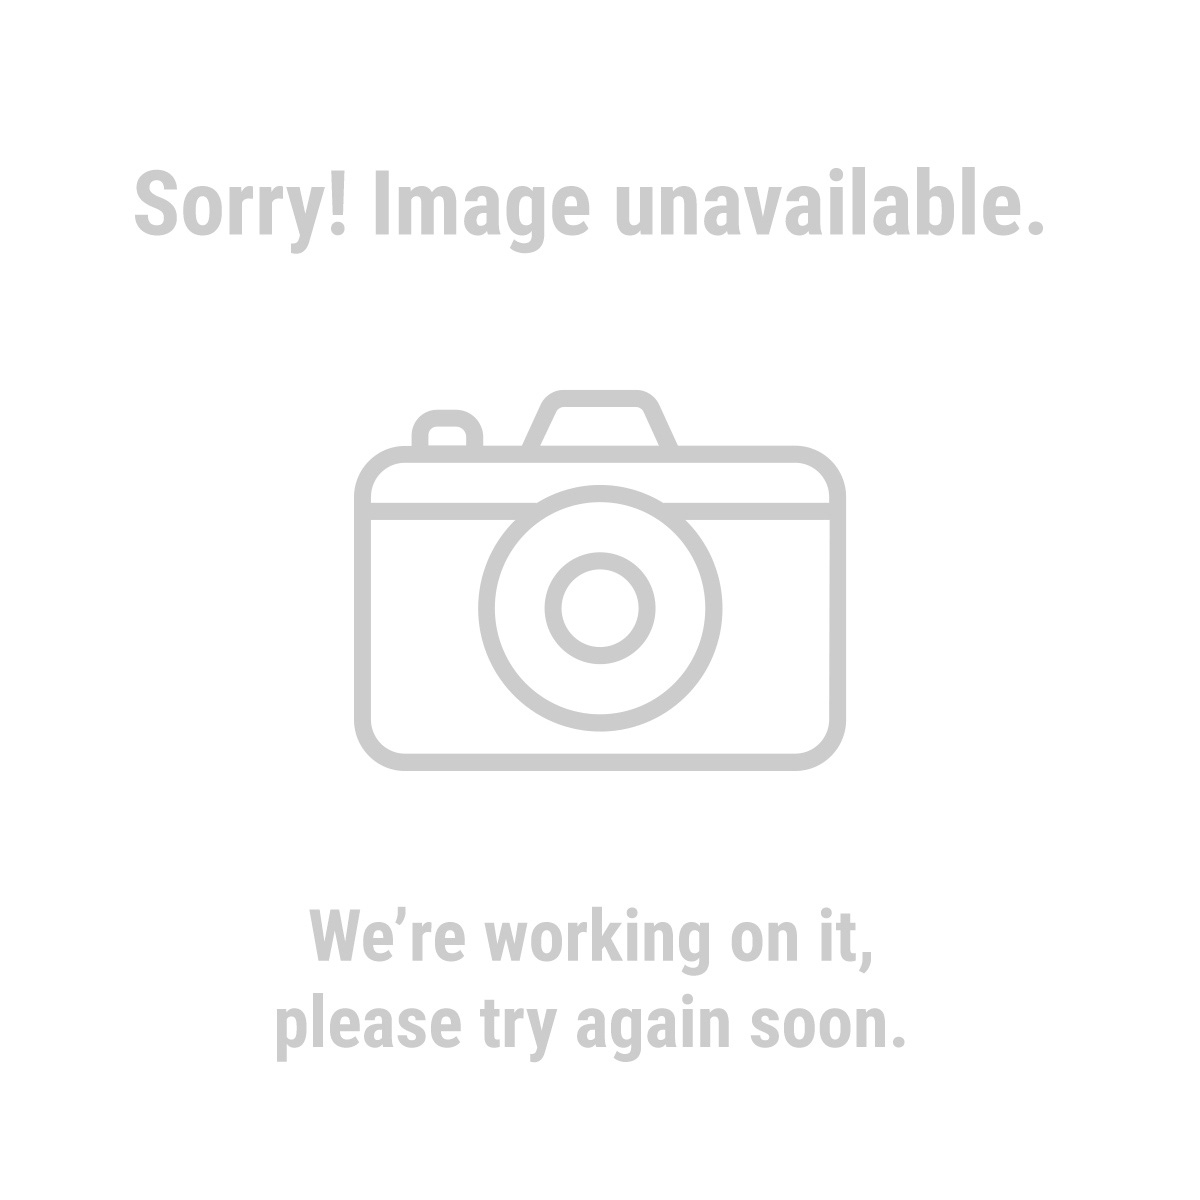 Earthquake® 63064 1/2 in. Stubby Air Impact Wrench